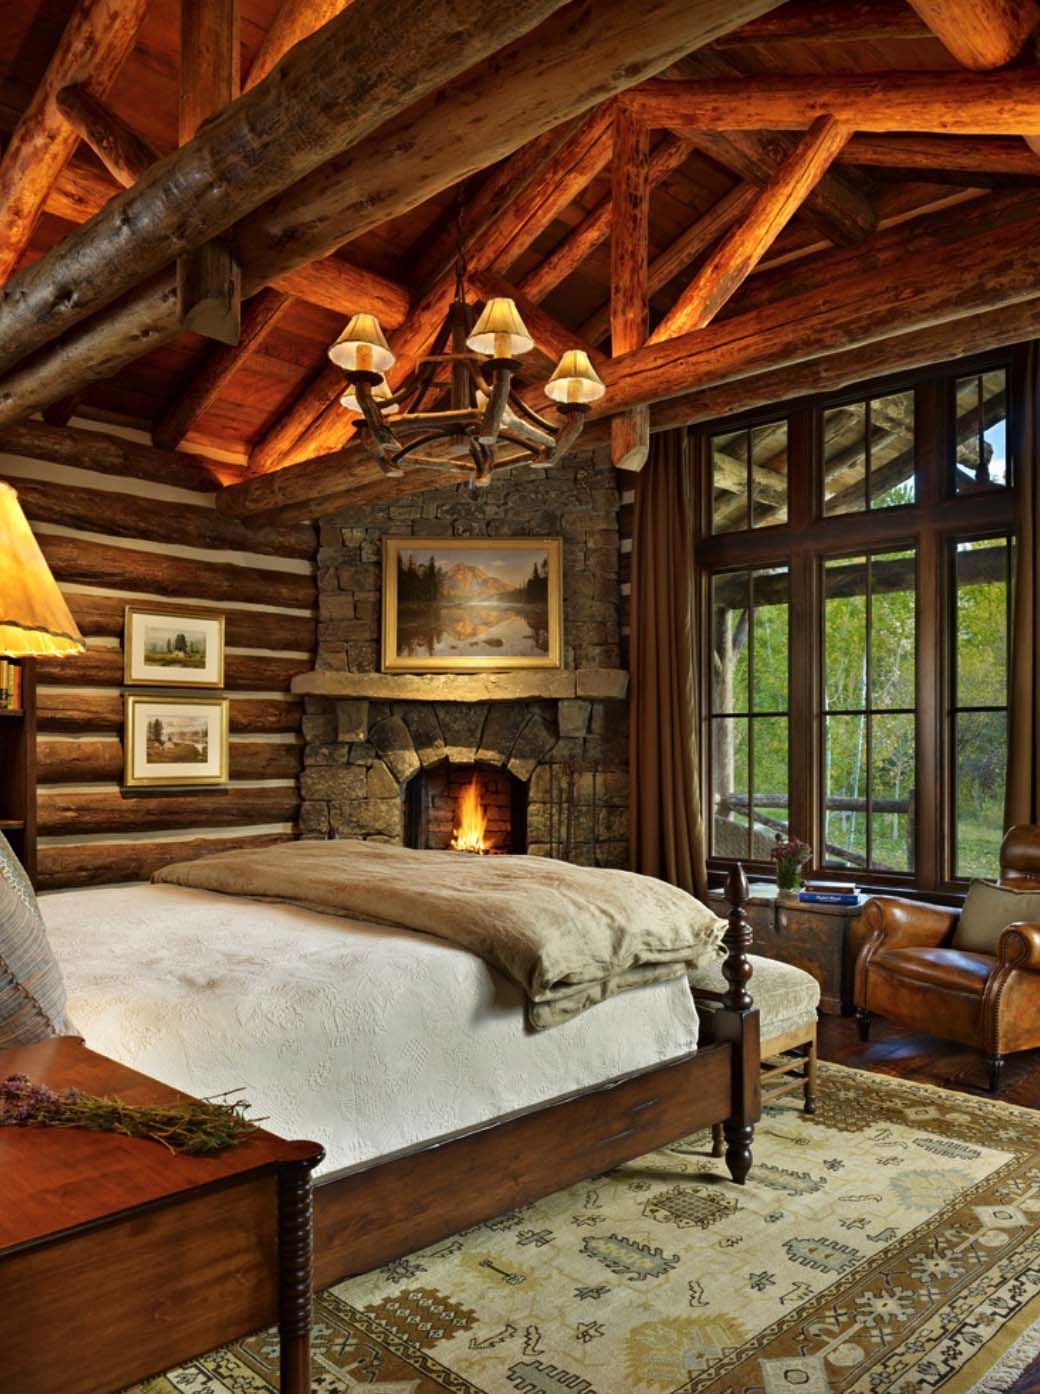 35 gorgeous log cabin style bedrooms to make you drool log homes rh pinterest com Lodge Bedroom Decor Bedroom Decor Moose Bear